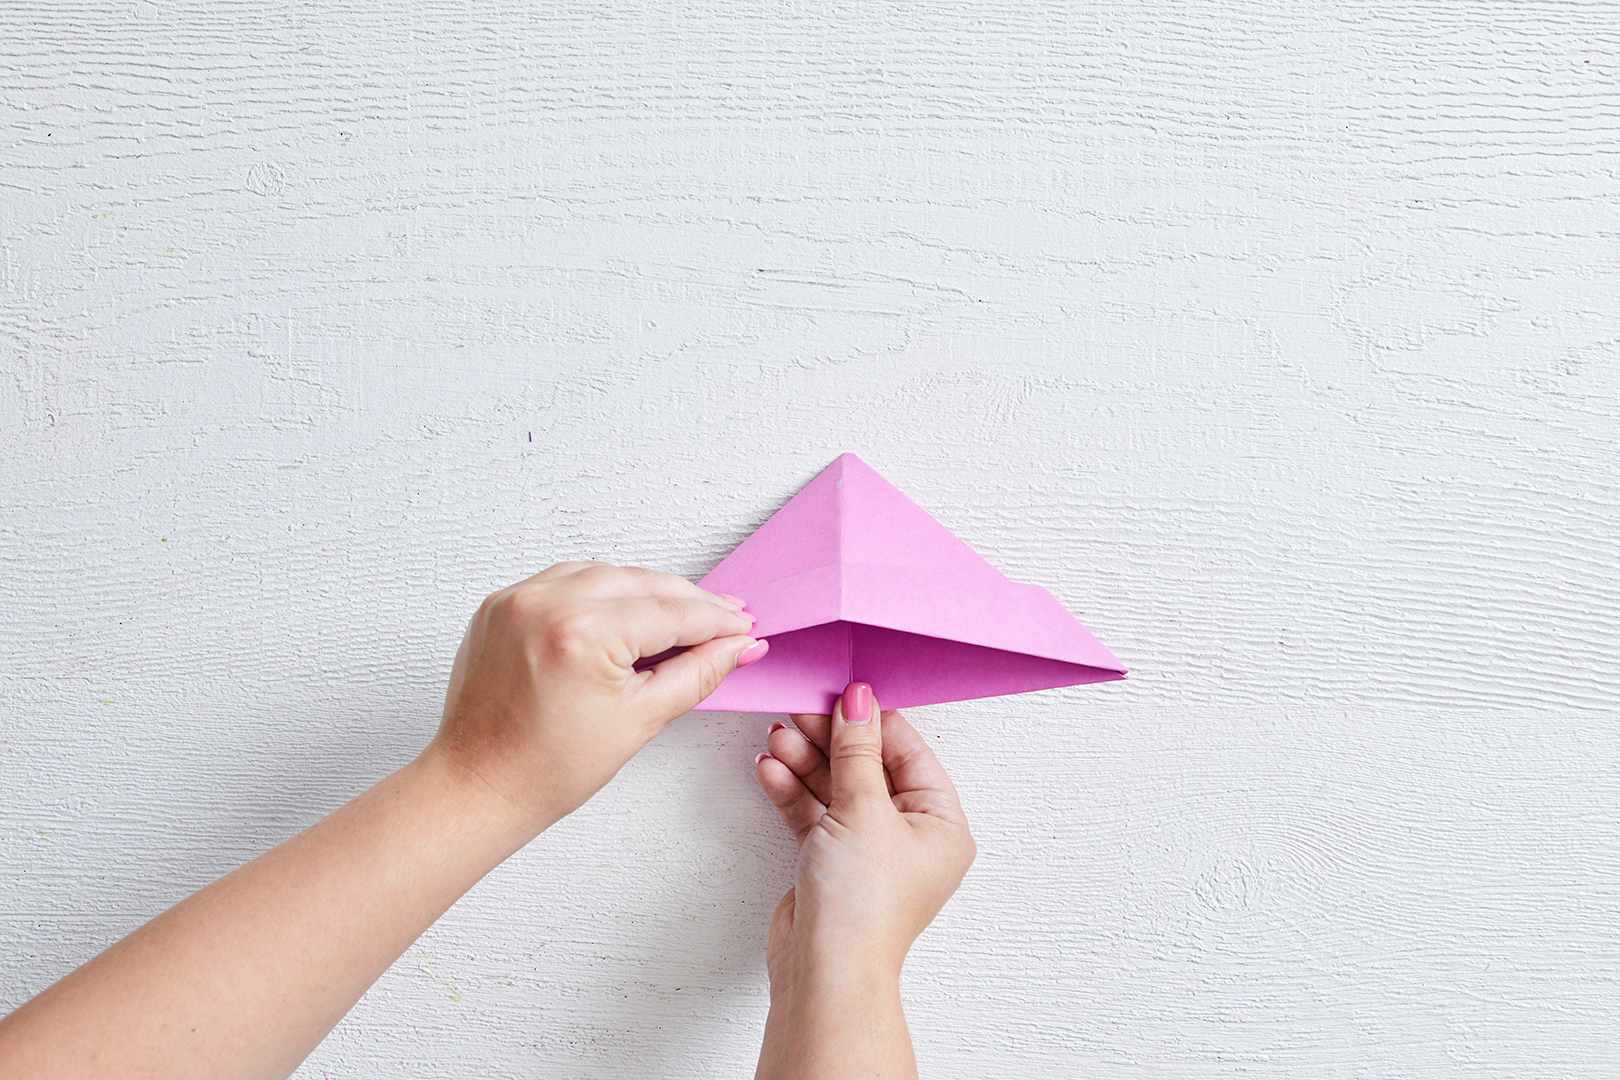 opening folded paper boat to reveal inside woman's hands